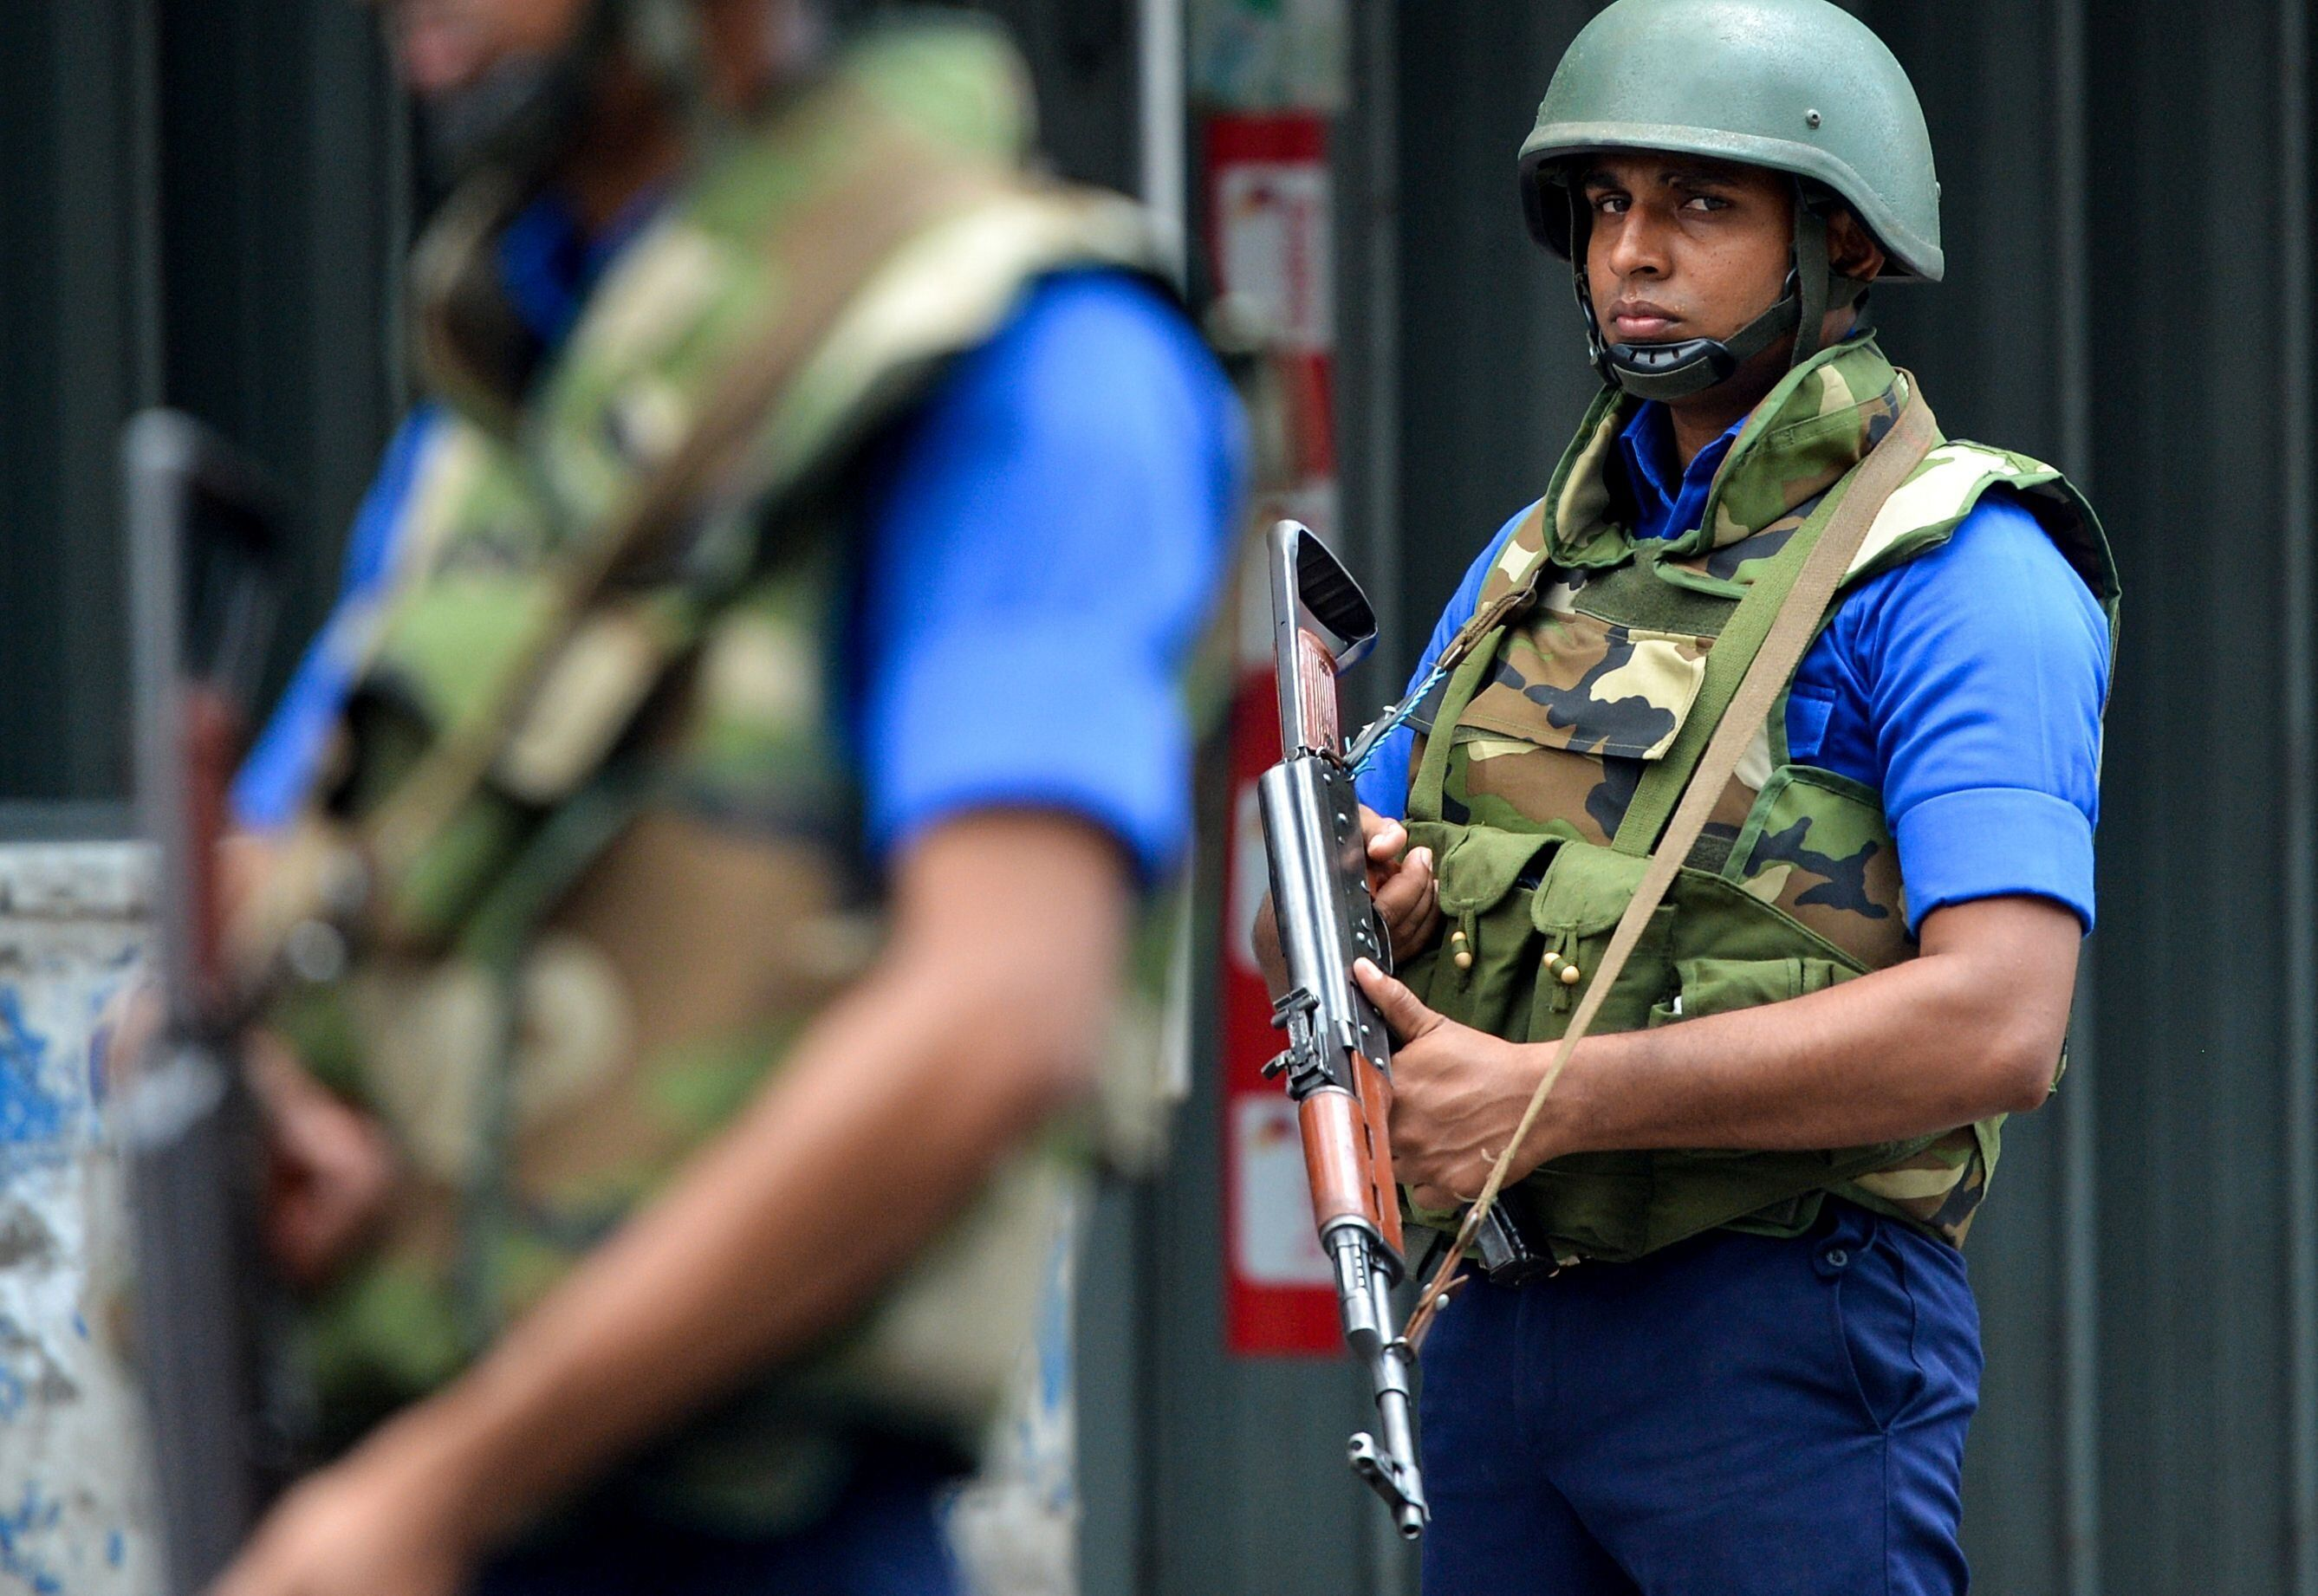 Father Of Sri Lanka Suicide Bombers Arrested On Suspicion Abetting Terror